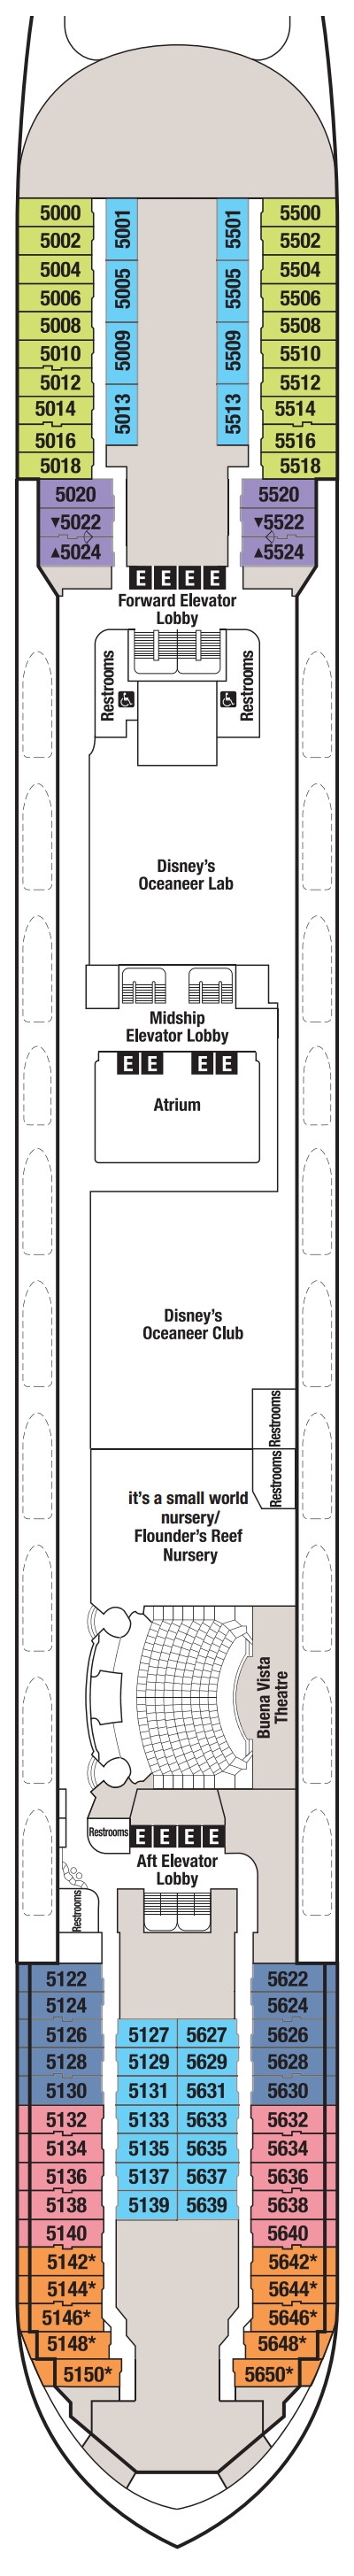 Disney Magic Deck 5 layout